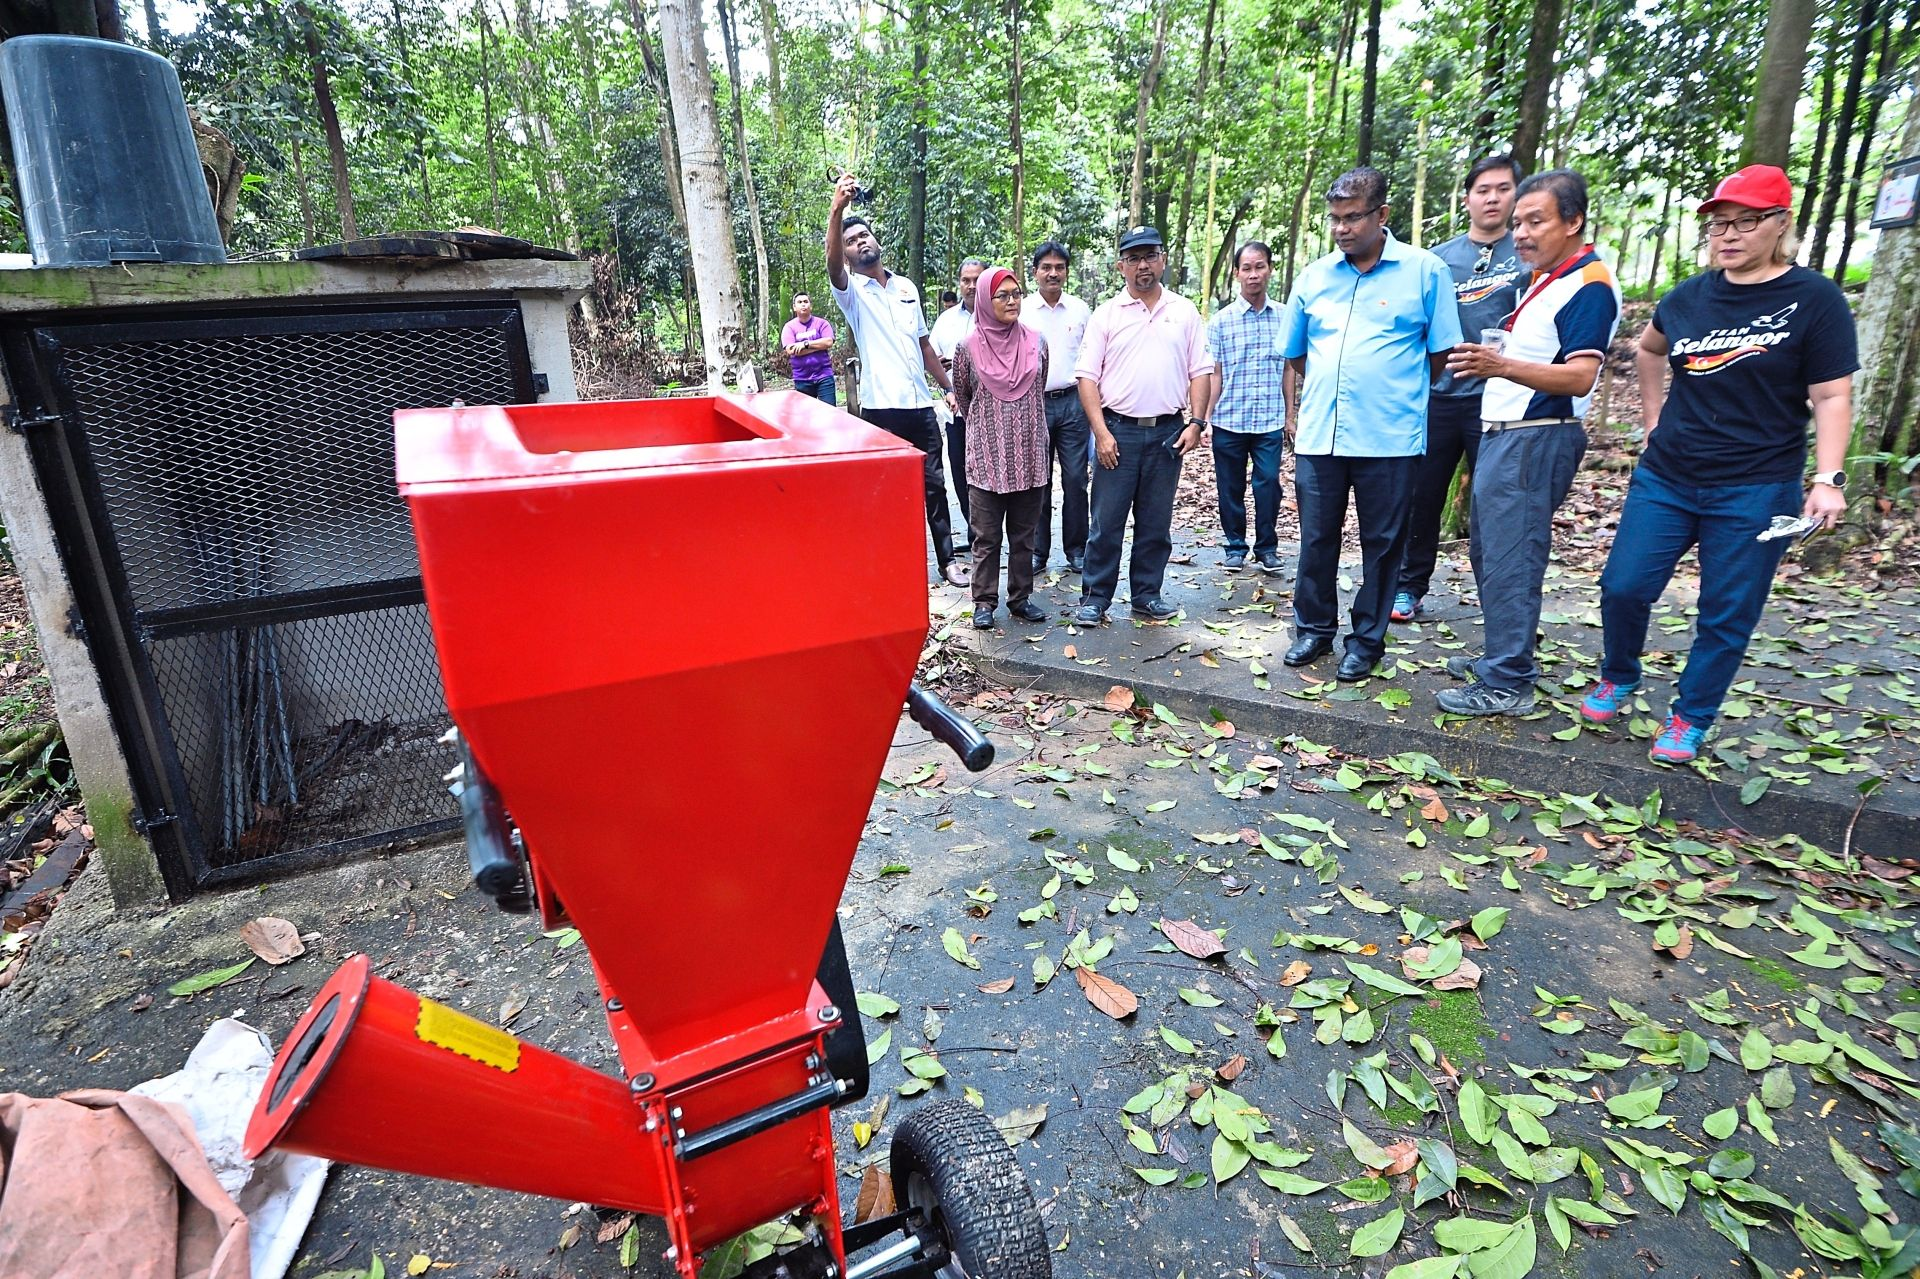 Eijau Millennium Explorer founder Mohd Fikri Mohd Bakri (second from right) explaining to Ganabatirau (in blue shirt) and Bukit Lanjan assemblyman Elizabeth Wong (right) how his team's composting project works.